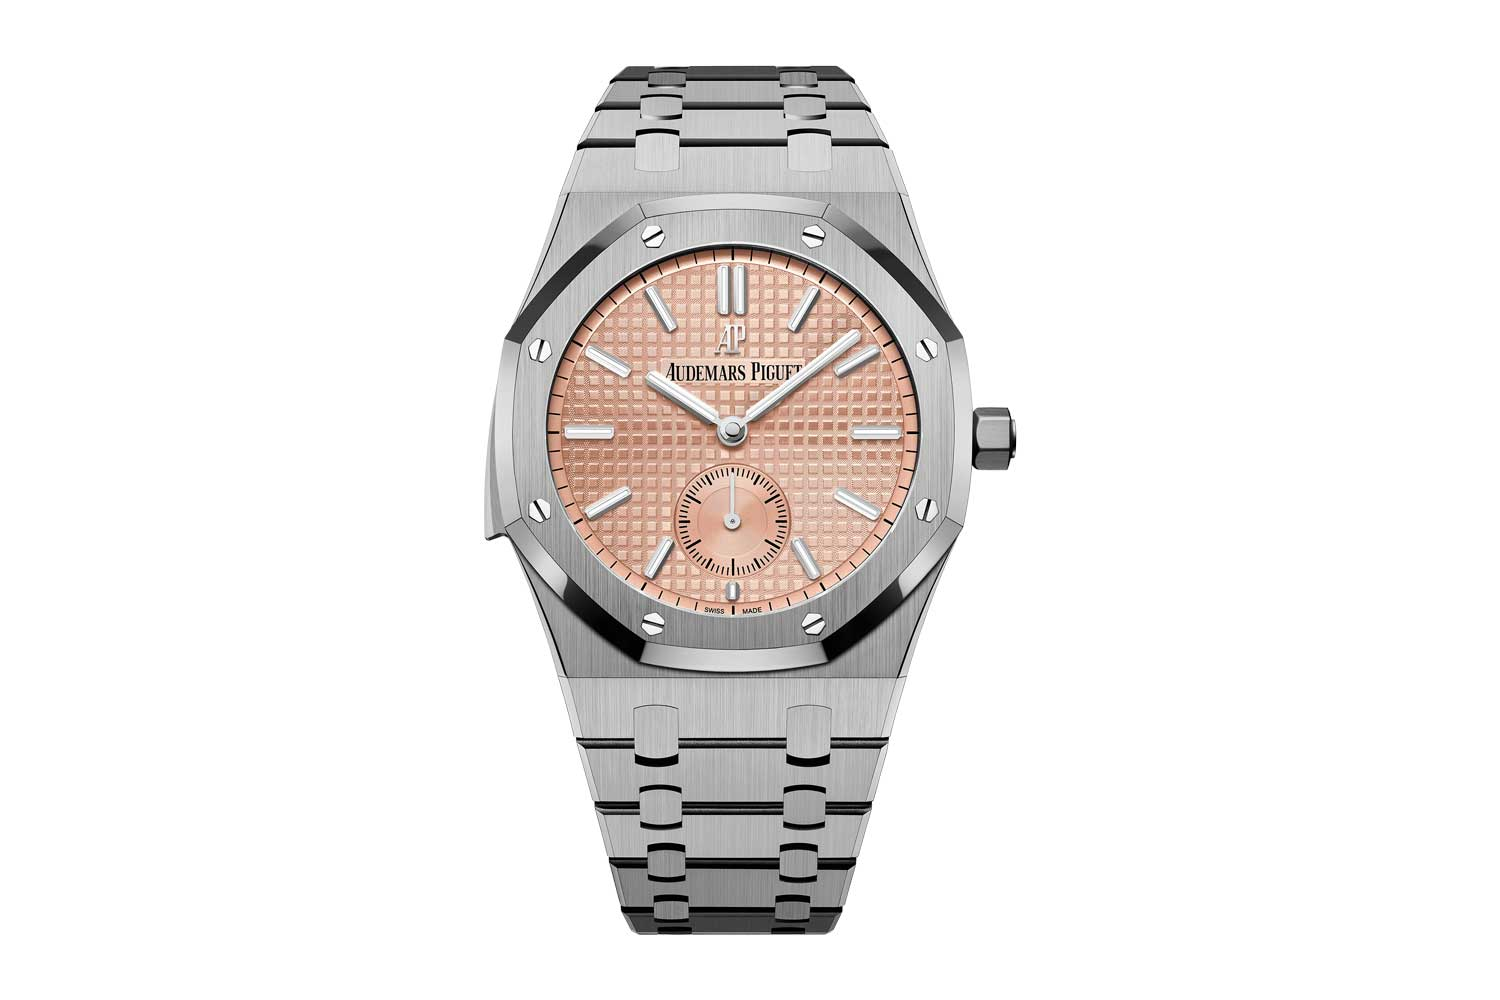 Royal Oak Minute Repeater Supersonnerie in titanium, ref. 26591TI.OO.1252TI.0; limited edition of 35 pieces